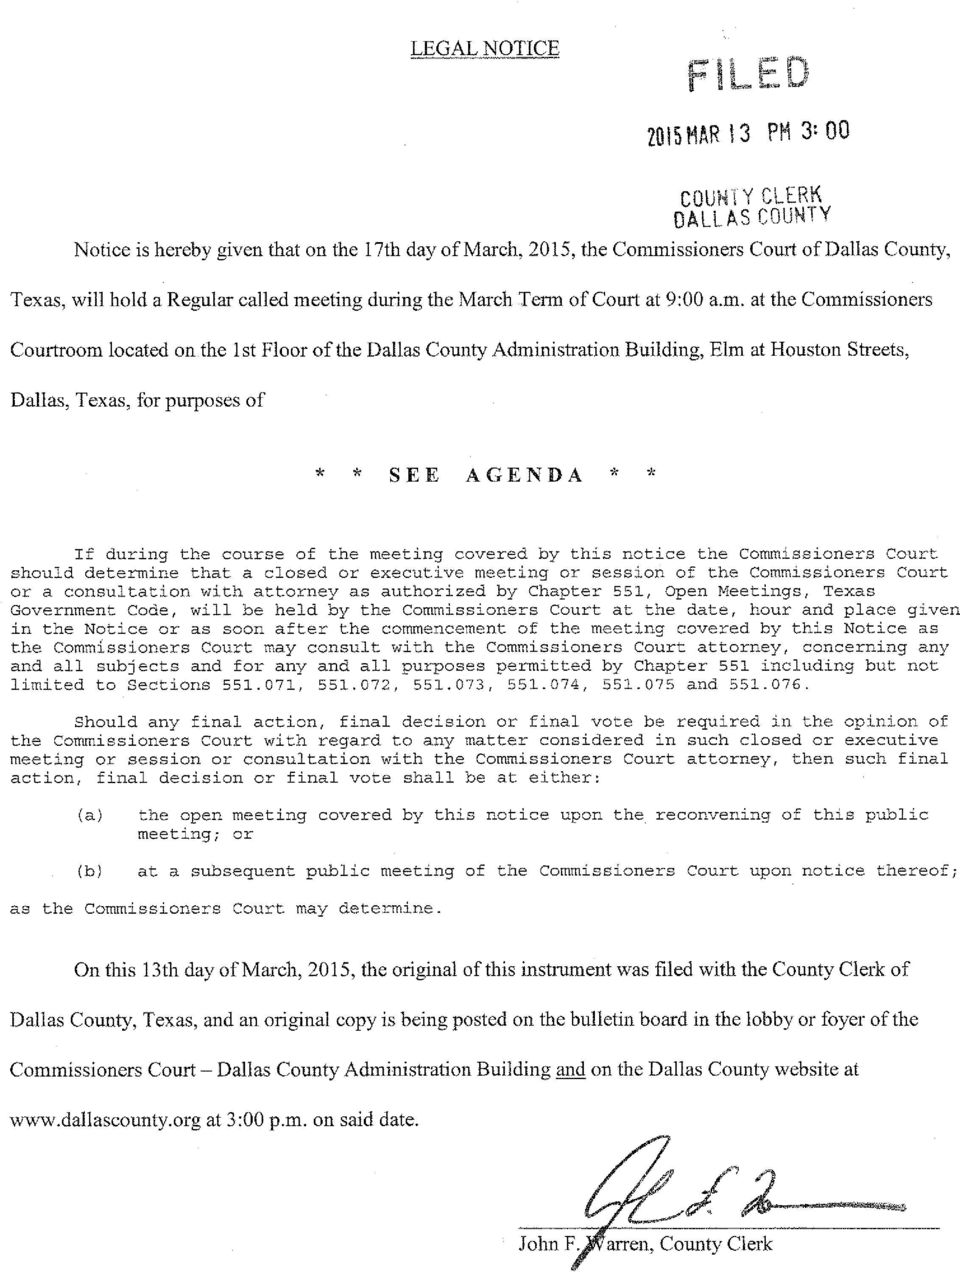 purposes of * * SEE AGENDA * * If during the course of the meeting covered by this notice the Commissioners Court should determine that a closed or executive meeting or session of the Commissioners